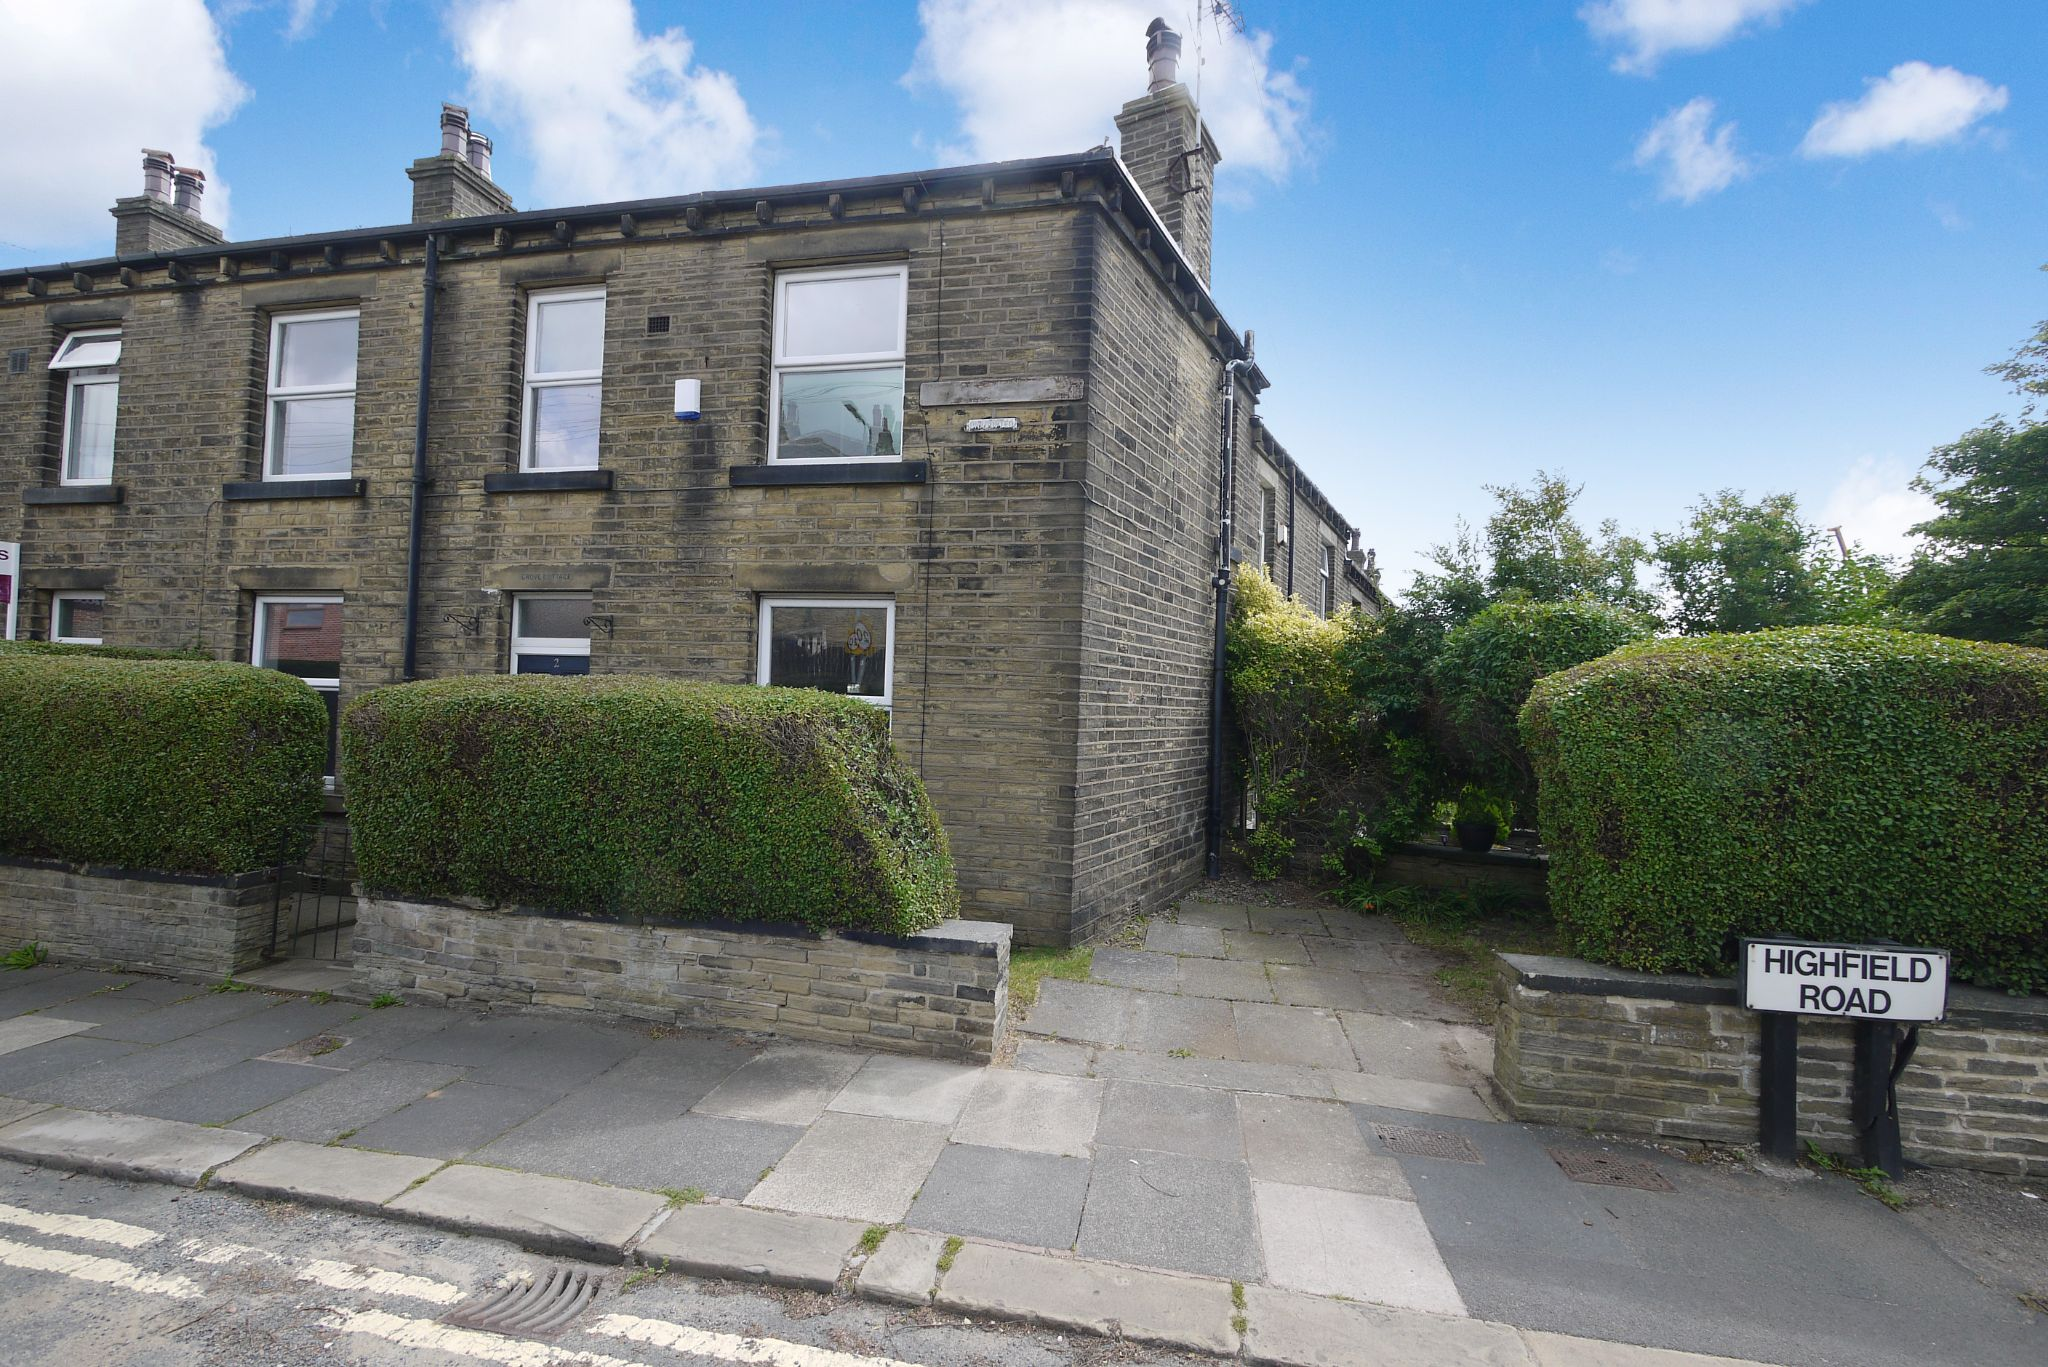 3 bedroom end terraced house SSTC in Brighouse - Photograph 1.